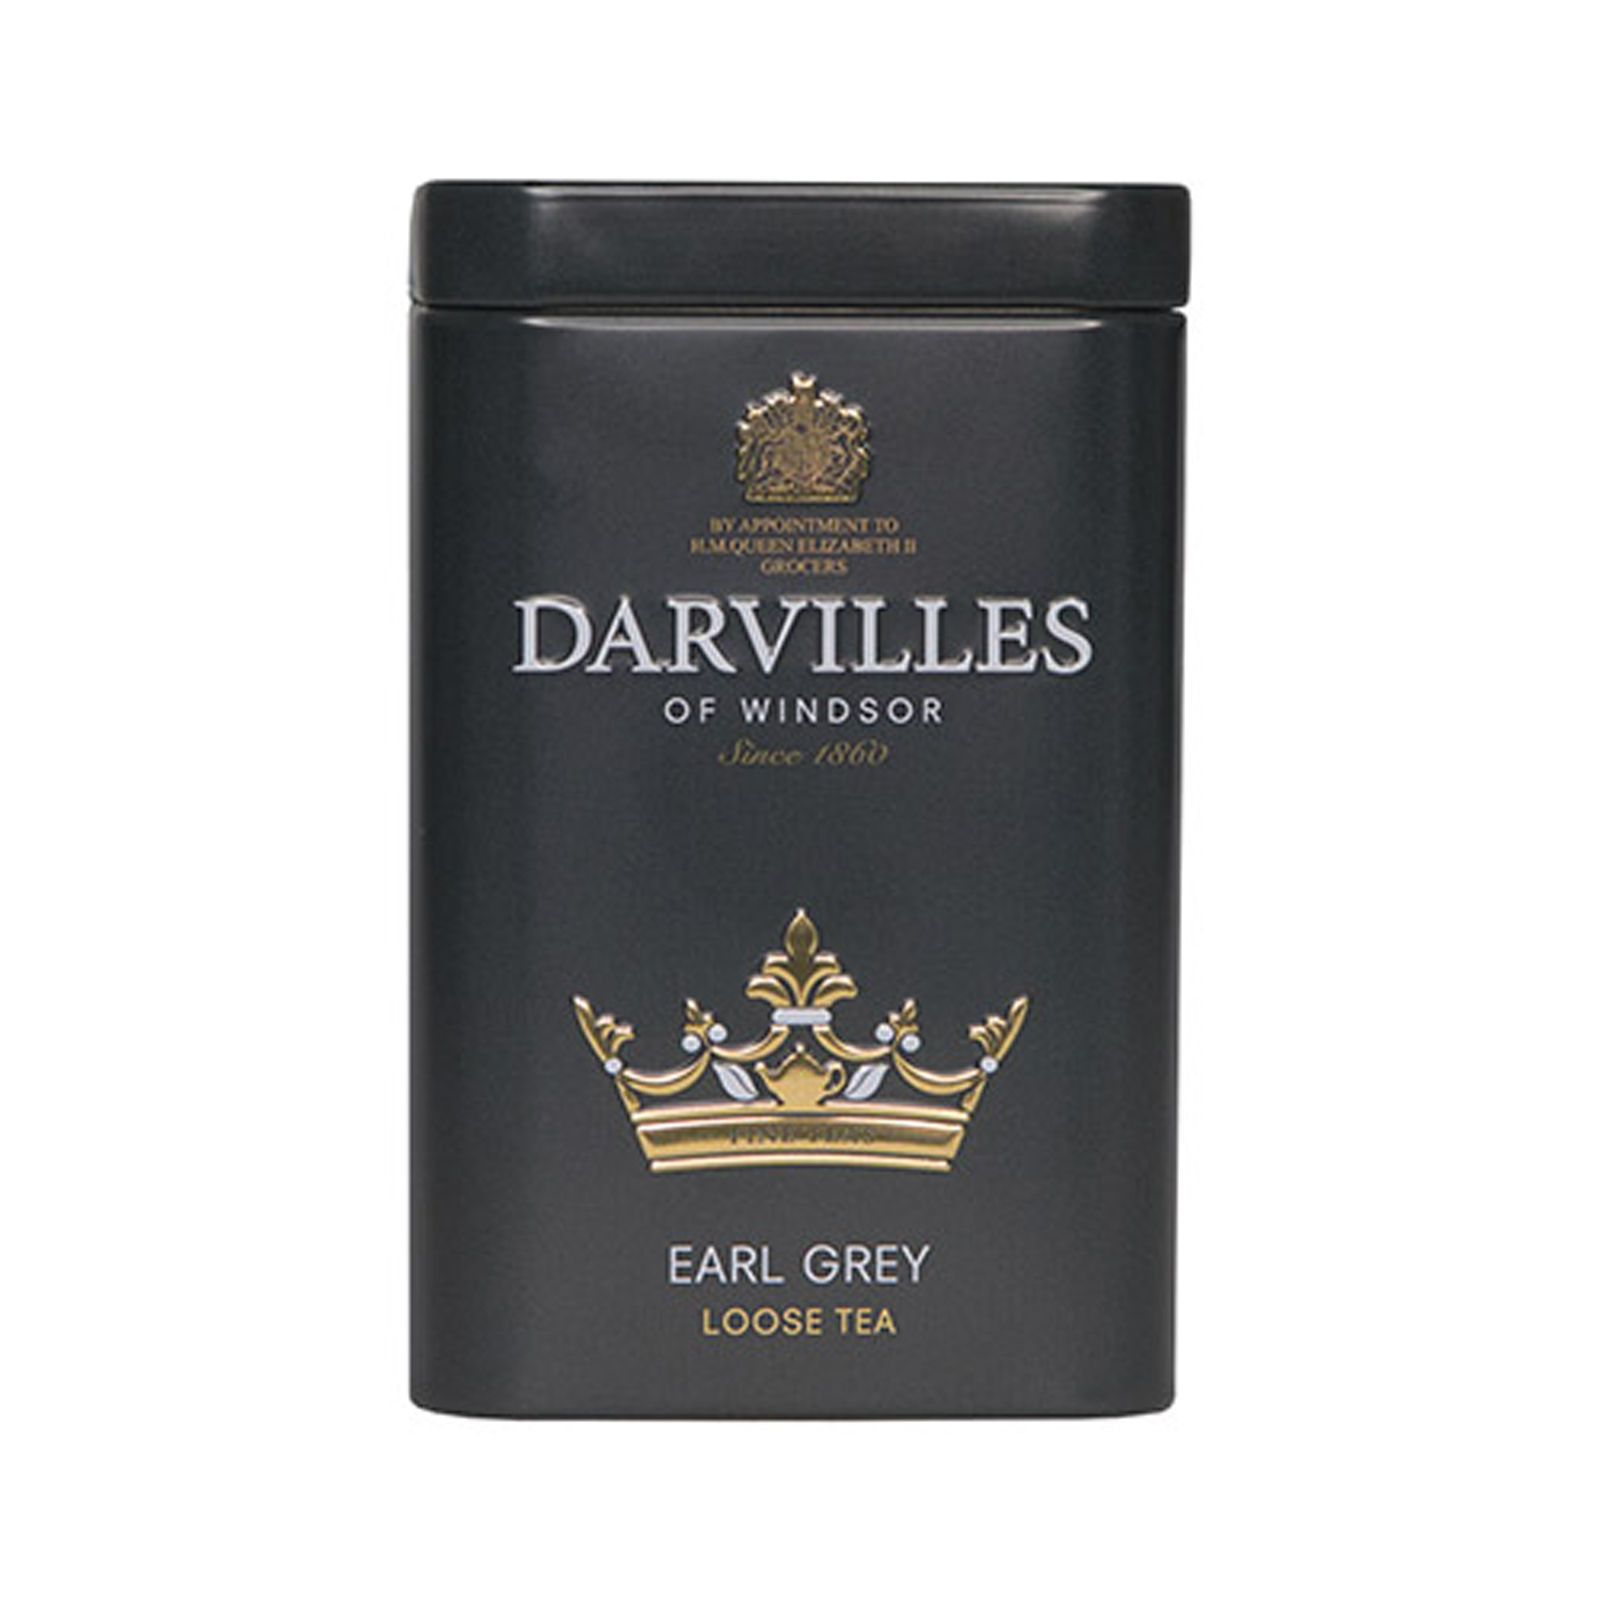 Darvilles of Windsor Earl Grey Loose Tea Caddy 100gm